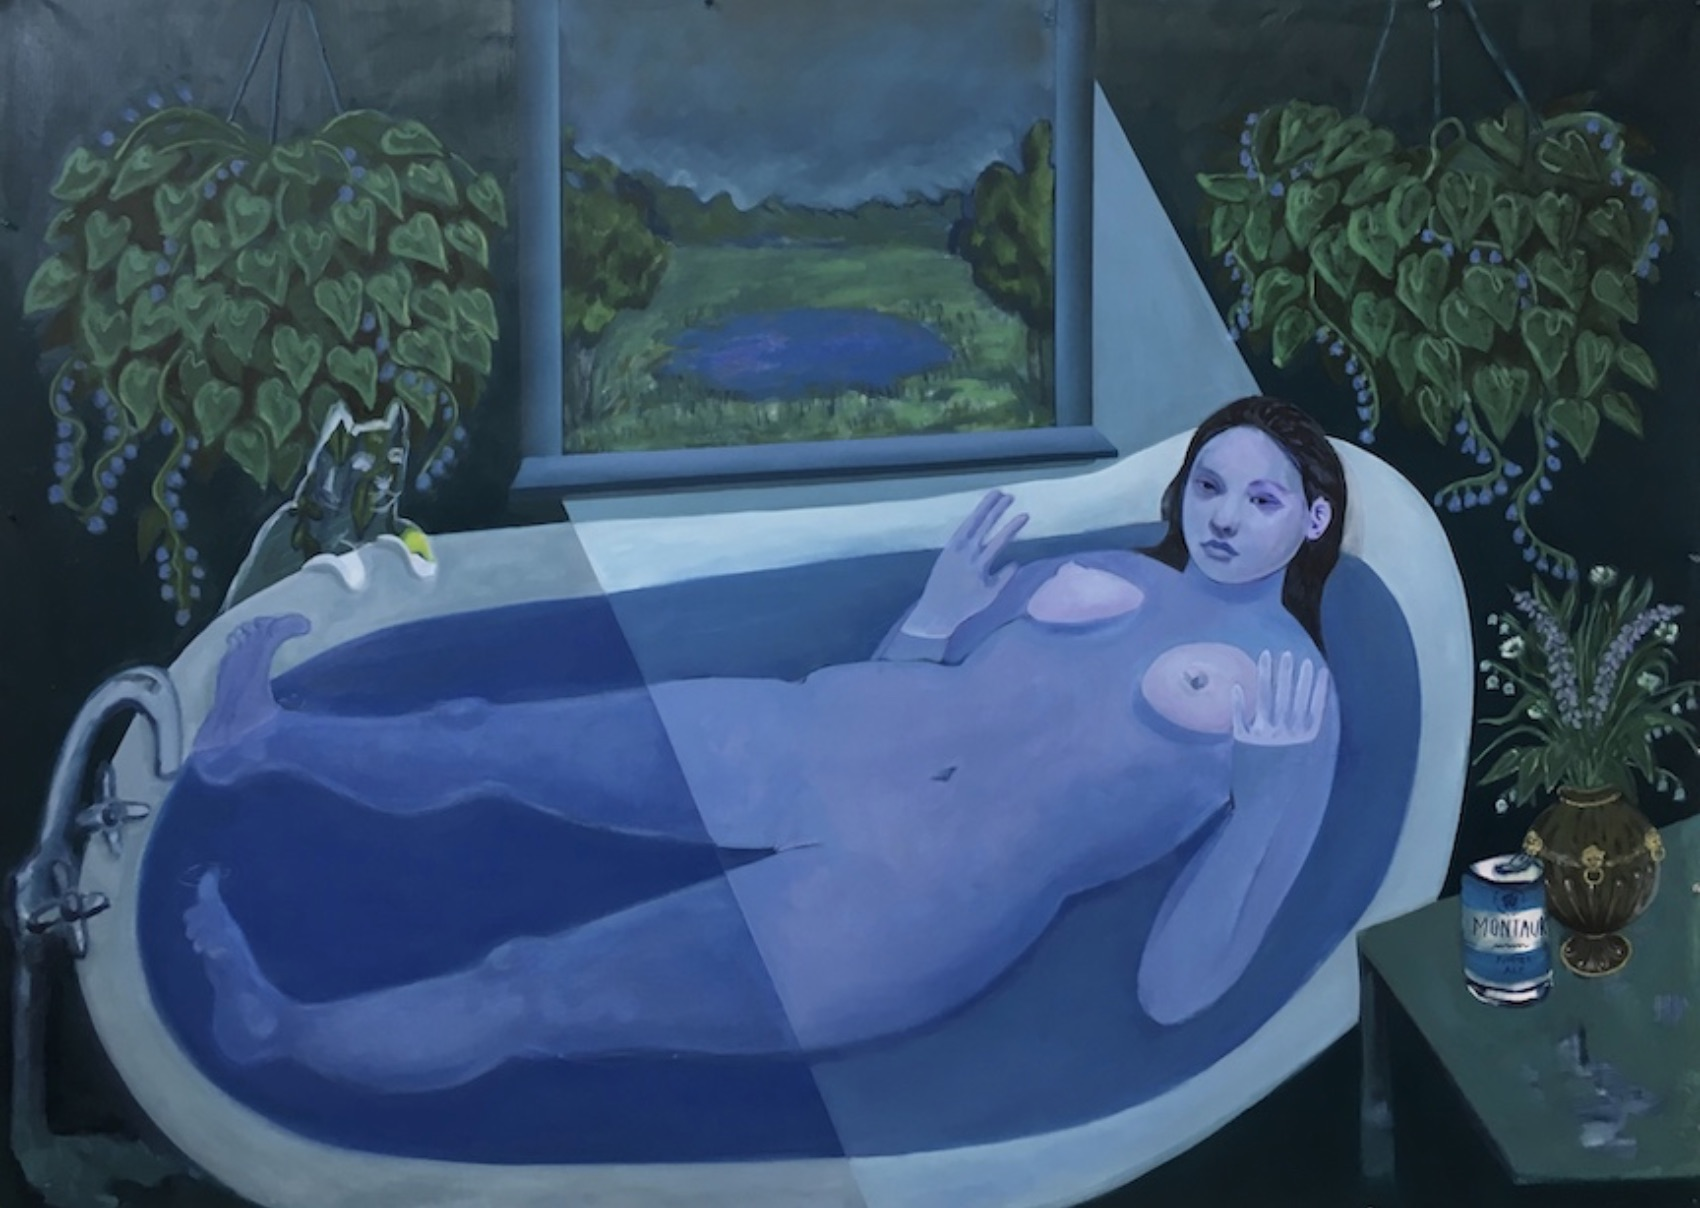 Bambou Gili, Ophelia In The Tub, 2019. Image courtesy of the artist and Arsenal Contemporary Art, New York